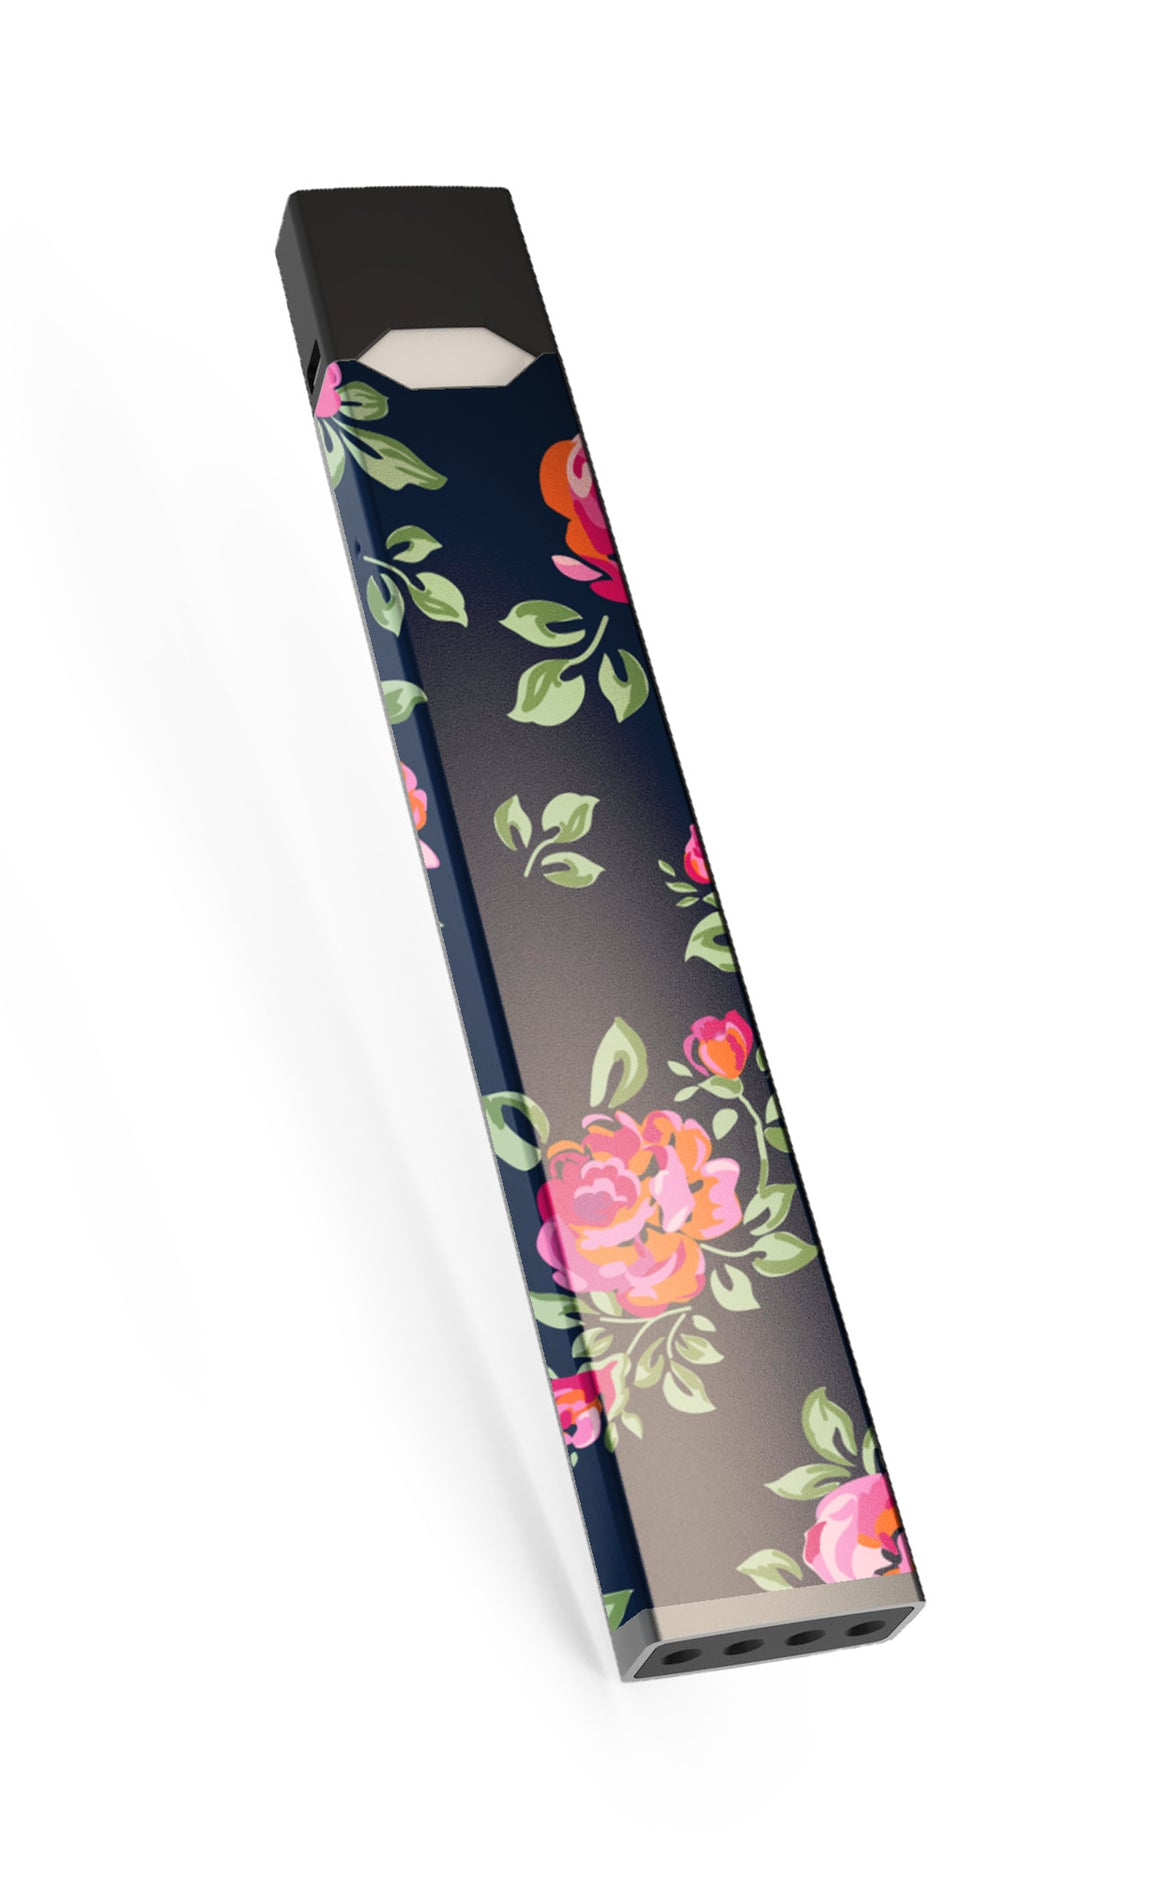 ROSE - Graphic Skin for JUUL